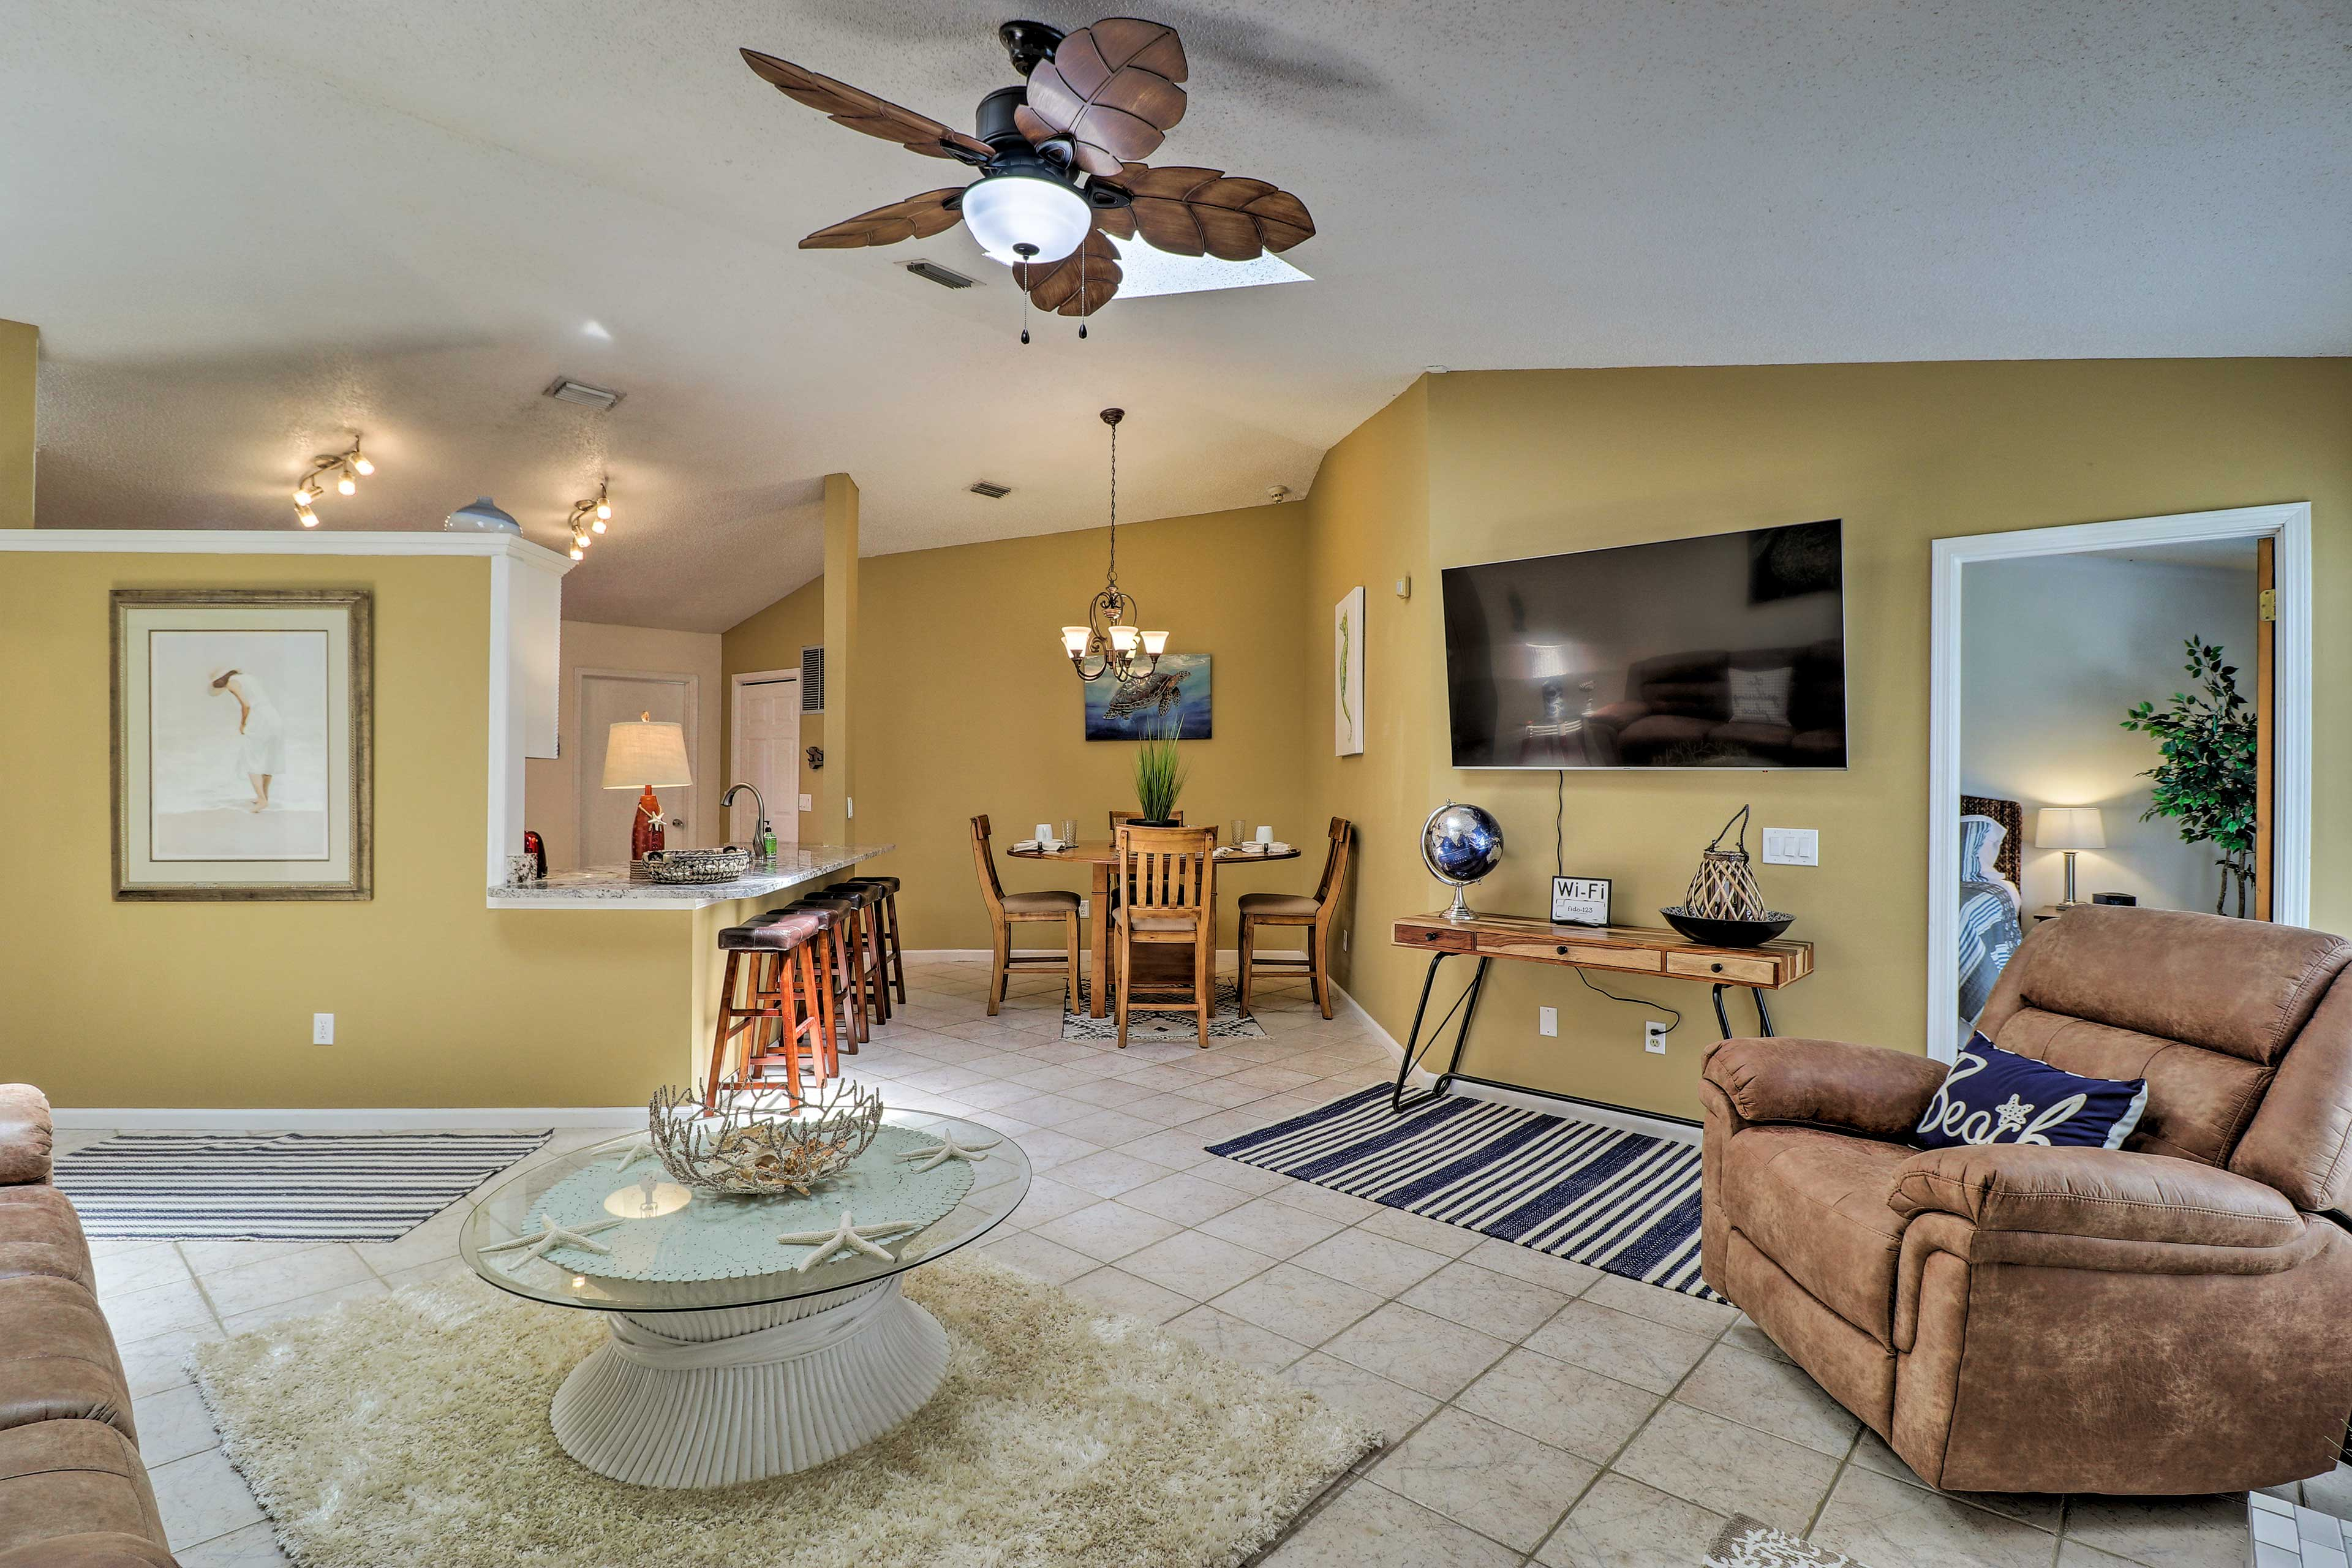 Book a trip to this 3-bedroom, 2-bathroom vacation rental home!